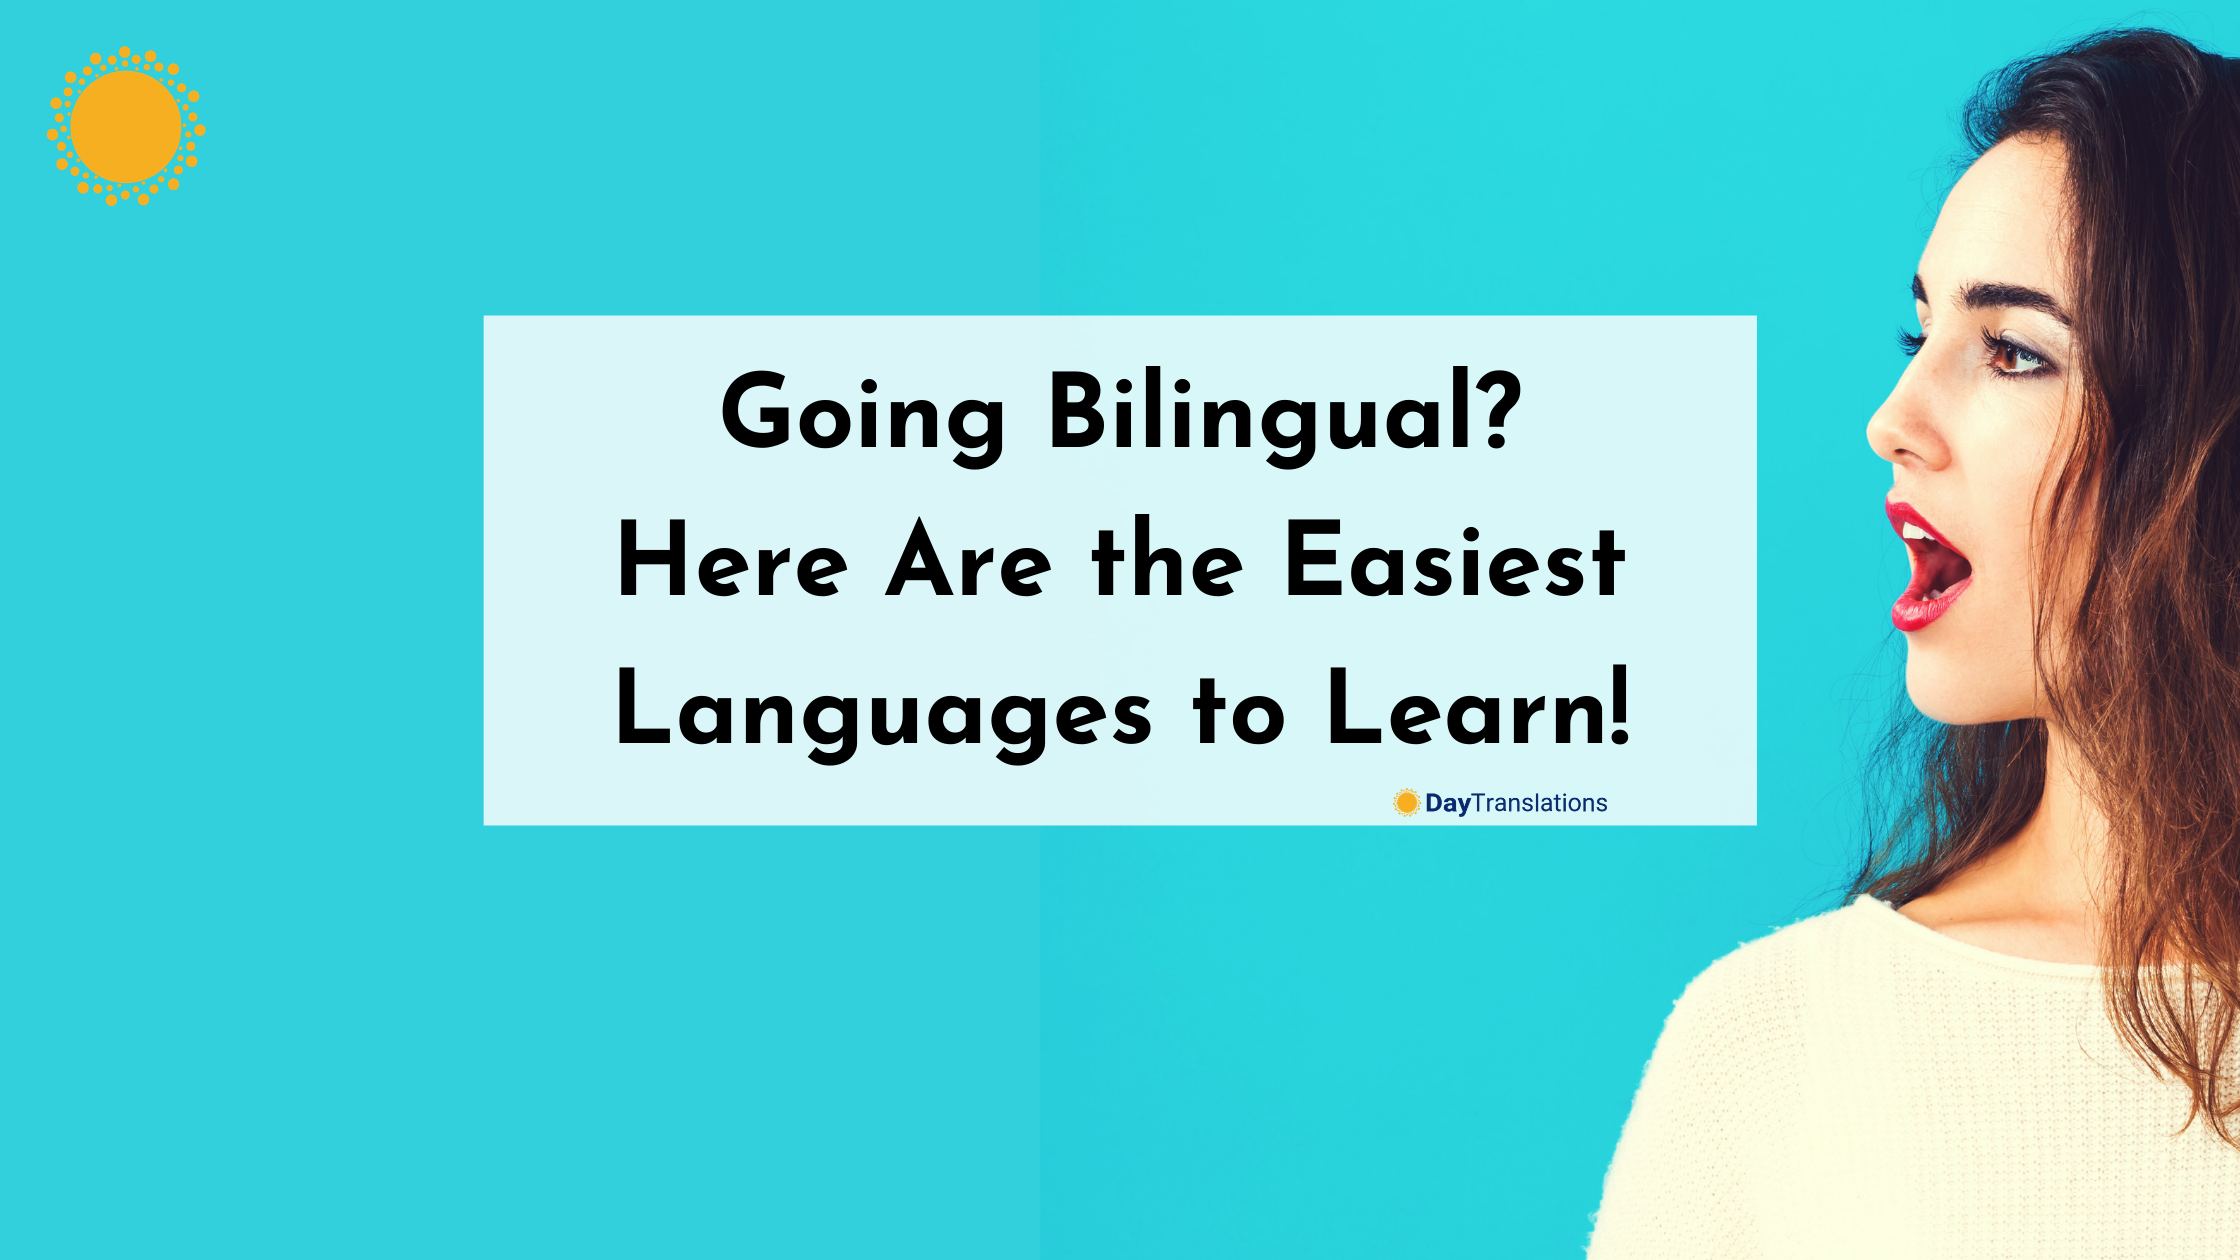 Going Bilingual? Here Are the Easiest Languages to Learn!